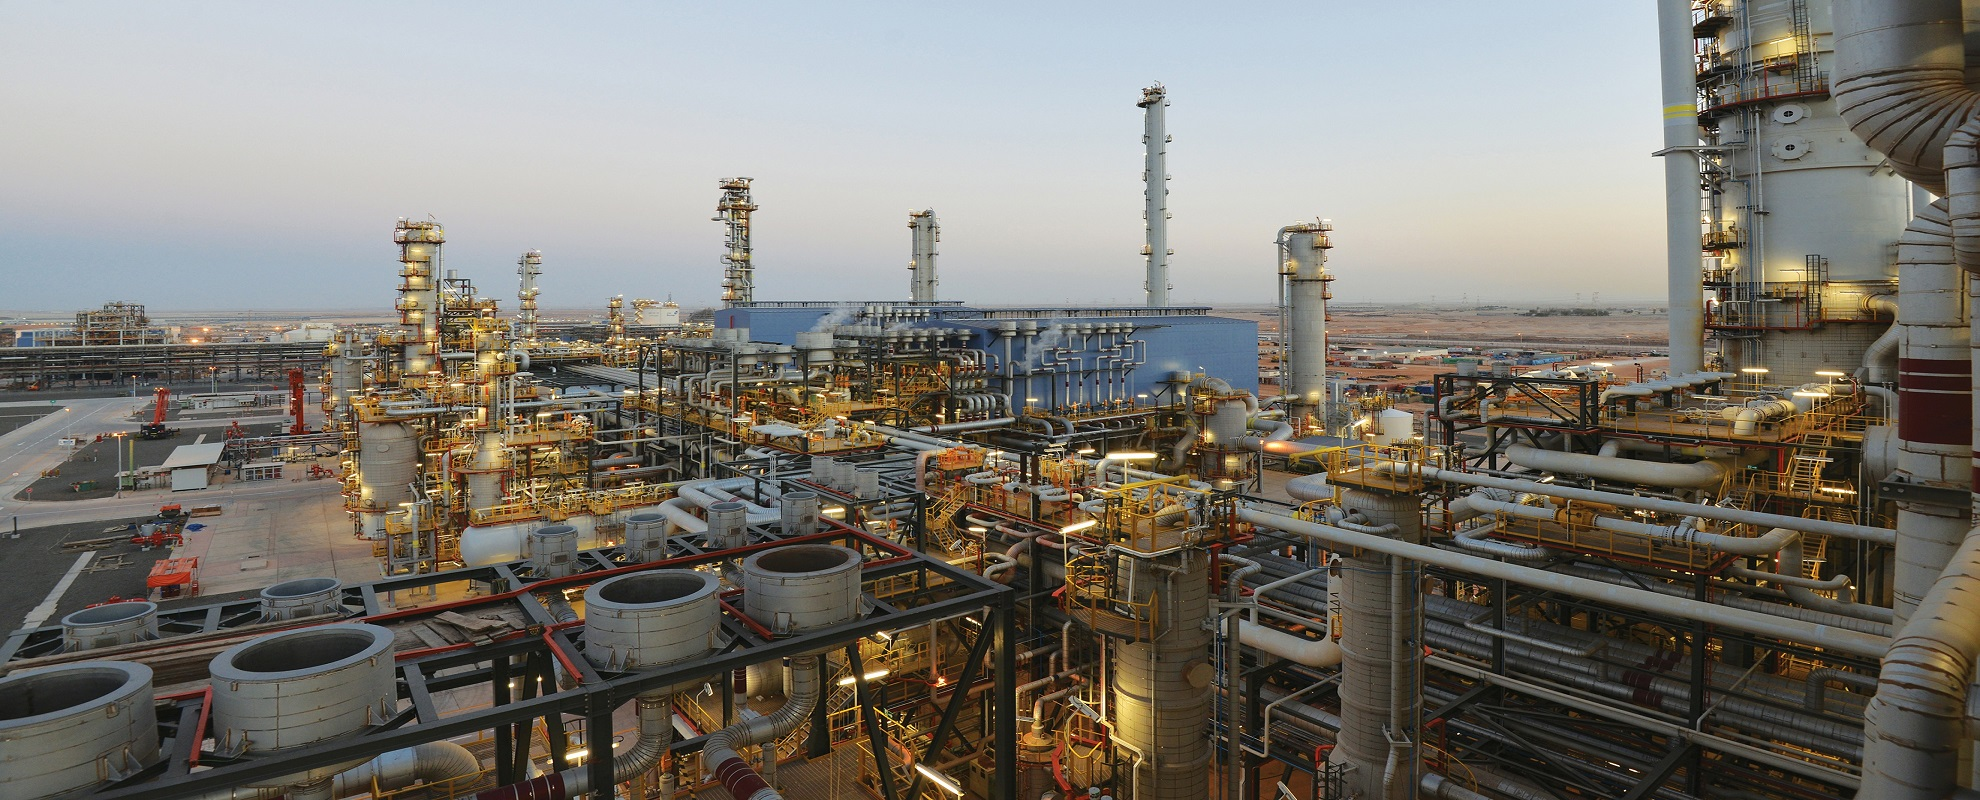 Petrochemical industry in the world